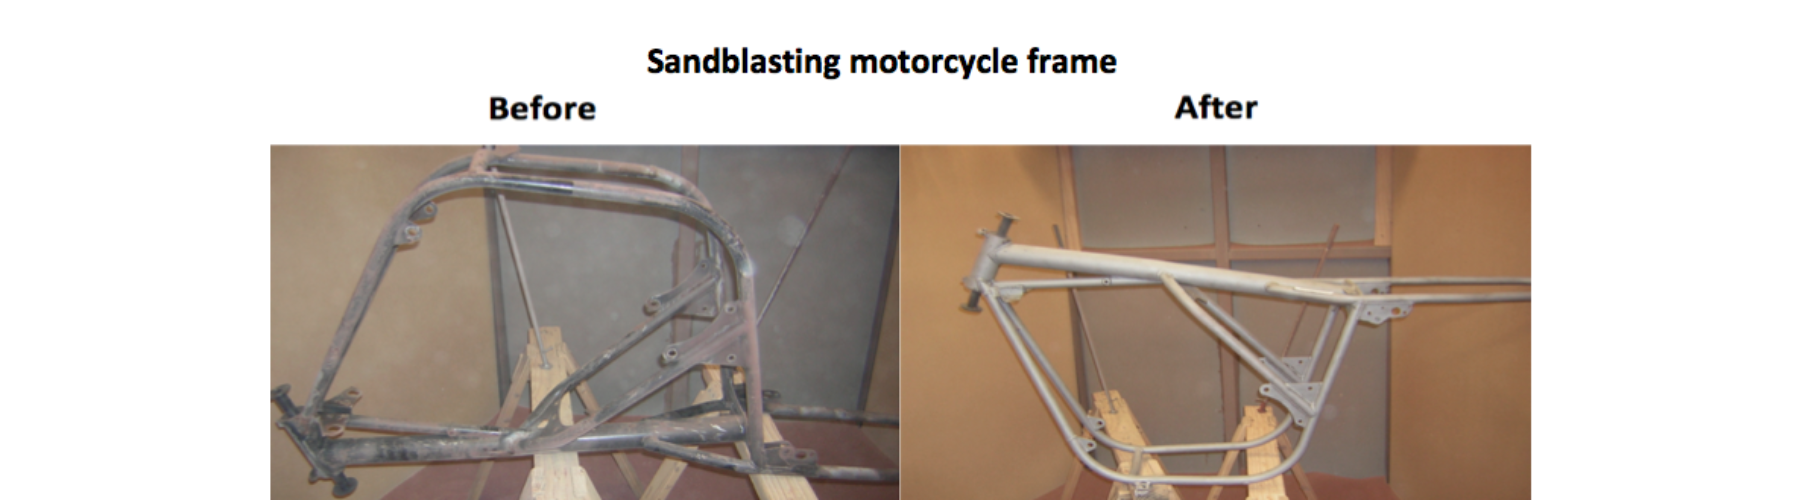 Aton Engineering sandblasting motorcycle frame